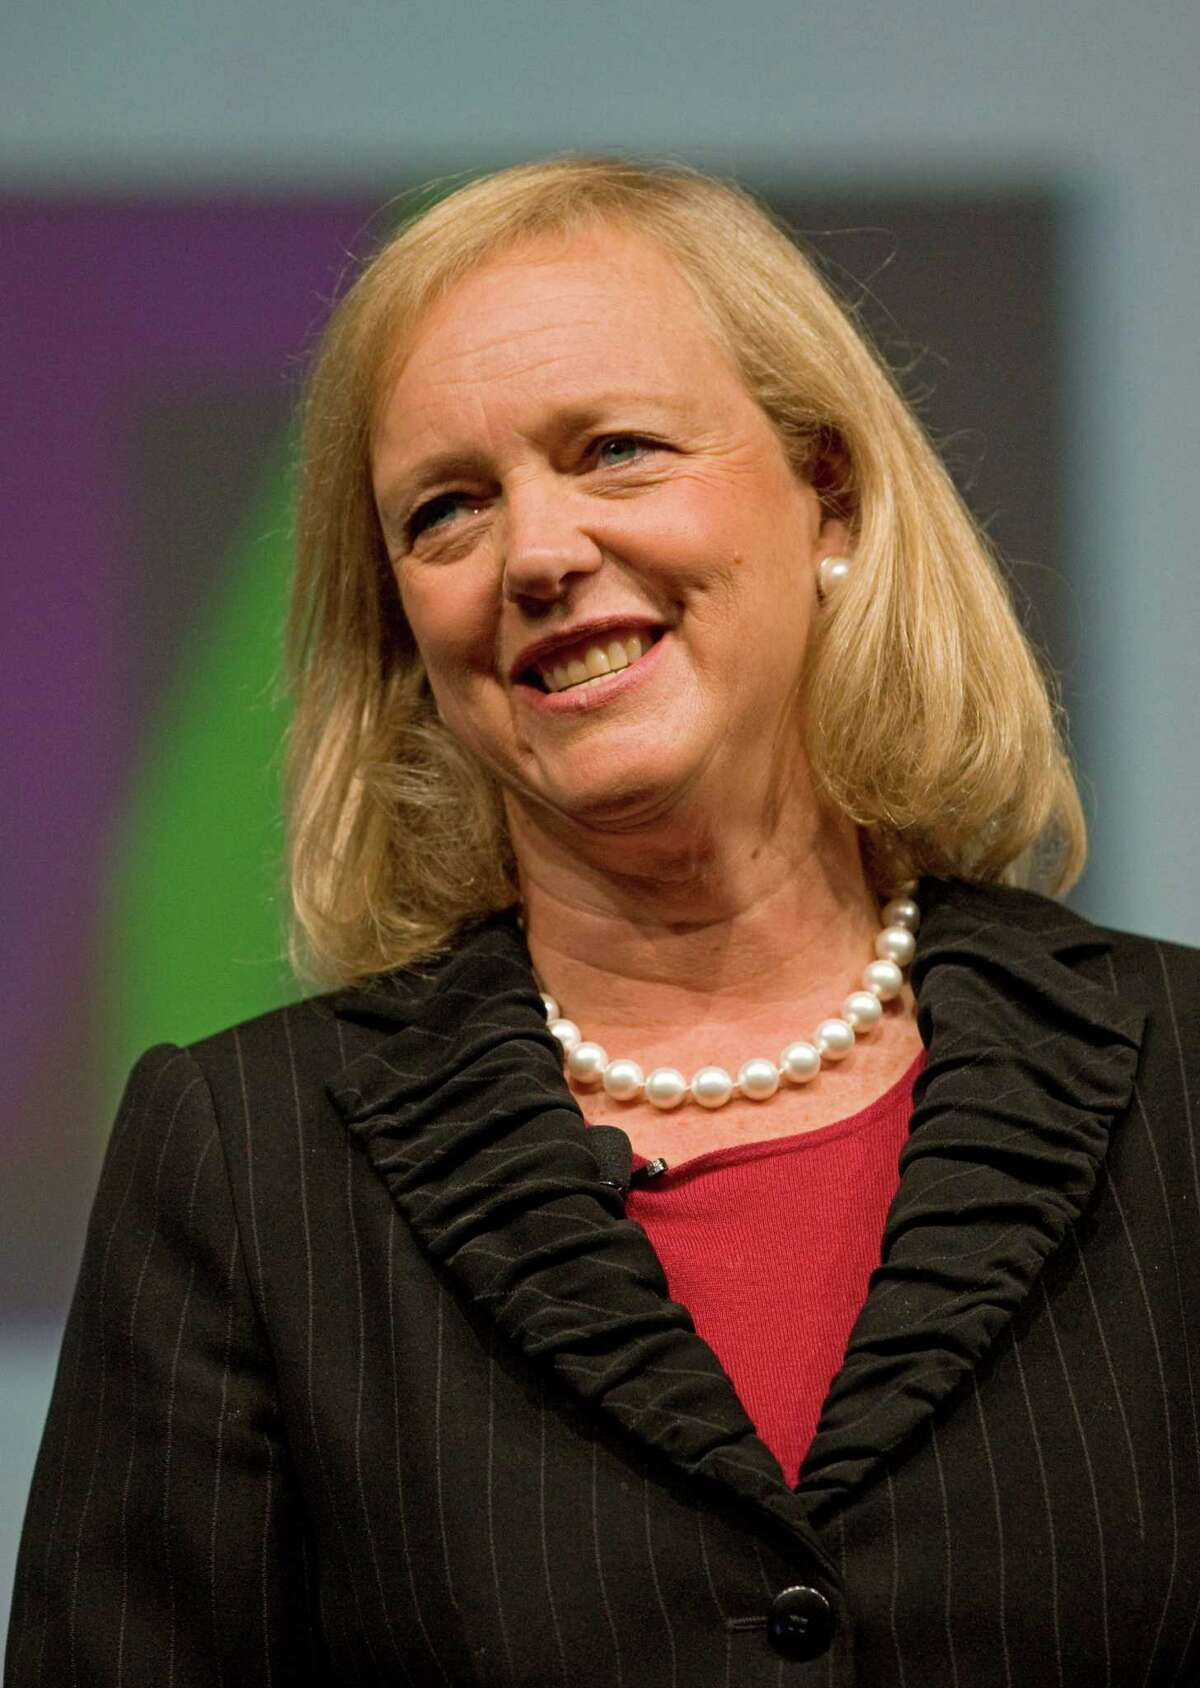 Hewlett-Packard's CEO, Meg Whitman, asked investors for patience as she tries to turn the company around. HP has many local employees.